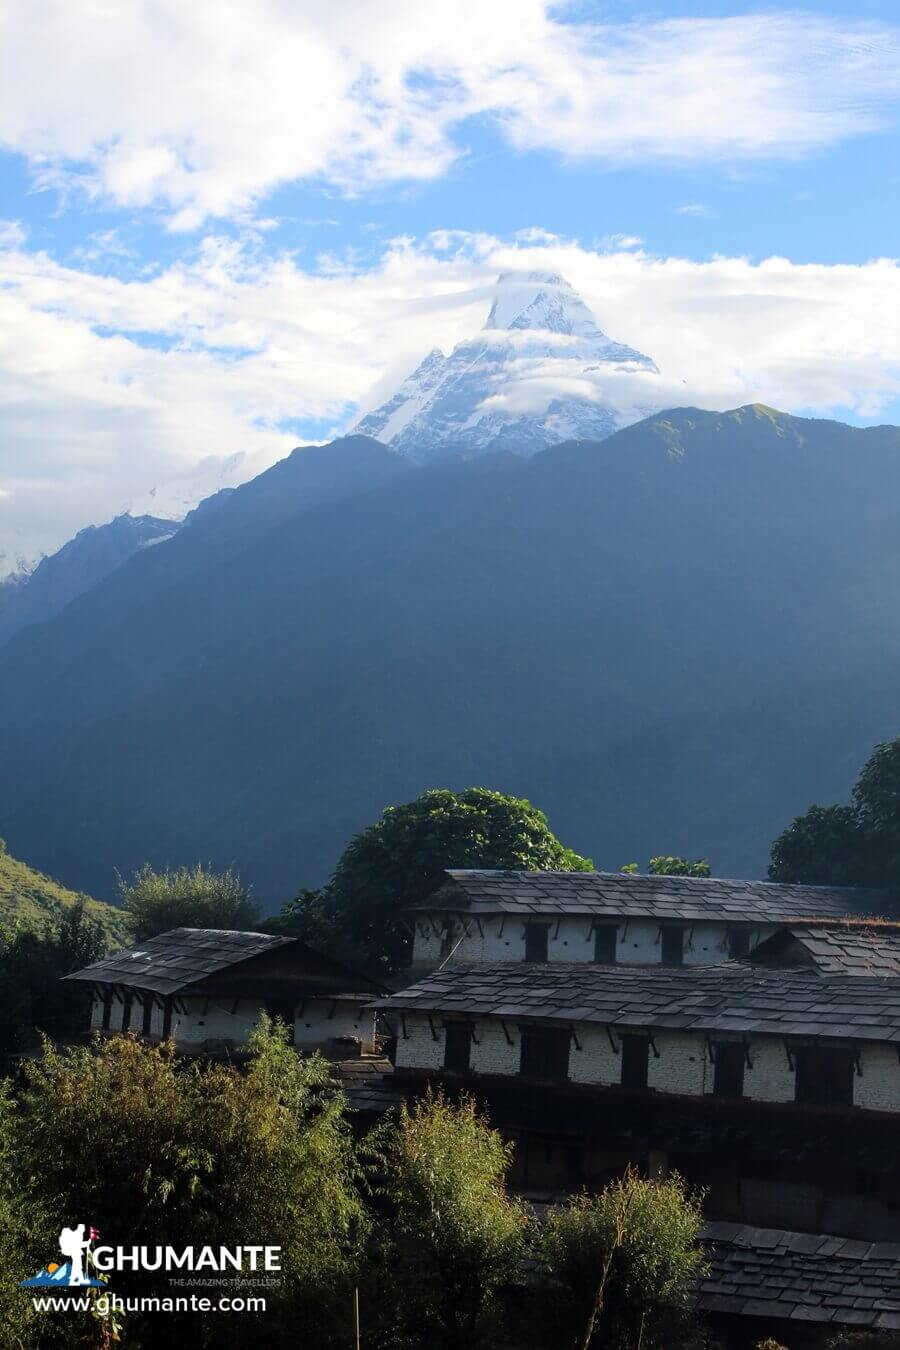 Mt. Macchapuchre and Ghandruk village in one frame